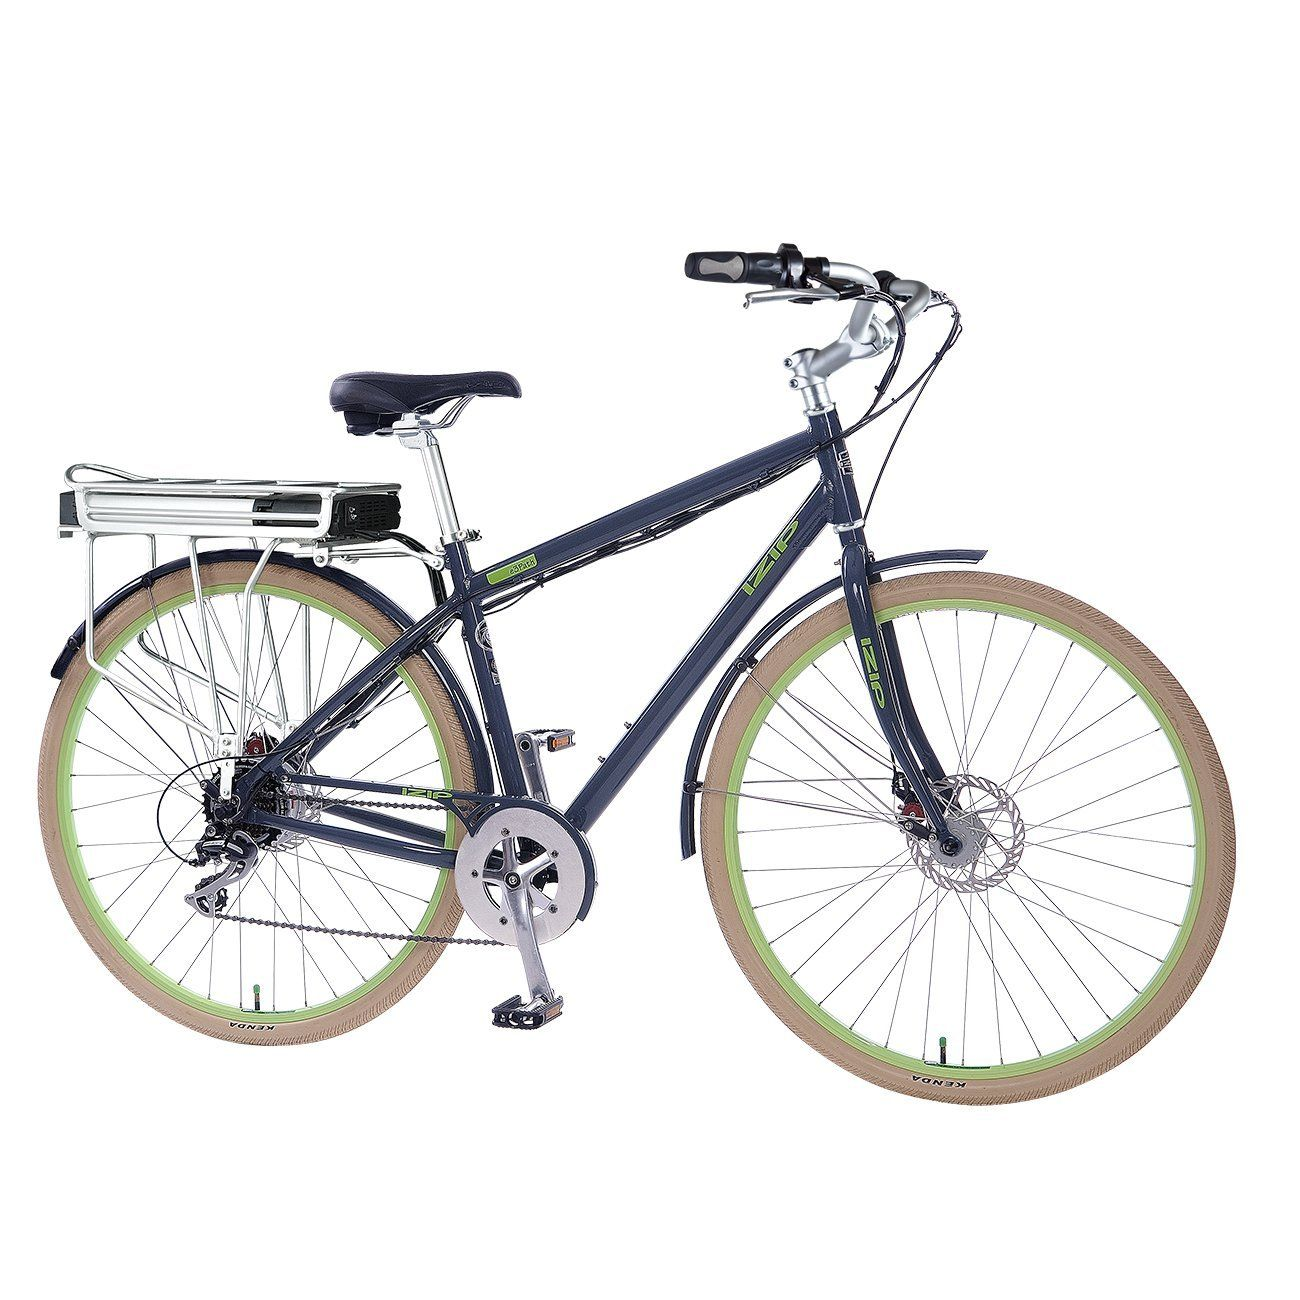 Amazon Com Currie Technologies Hybrid Electric Bike Izip E3 Path Bicycle Df Currie Technologies Battery Pack Hybrid Electric Bike Electric Bike Bicycle